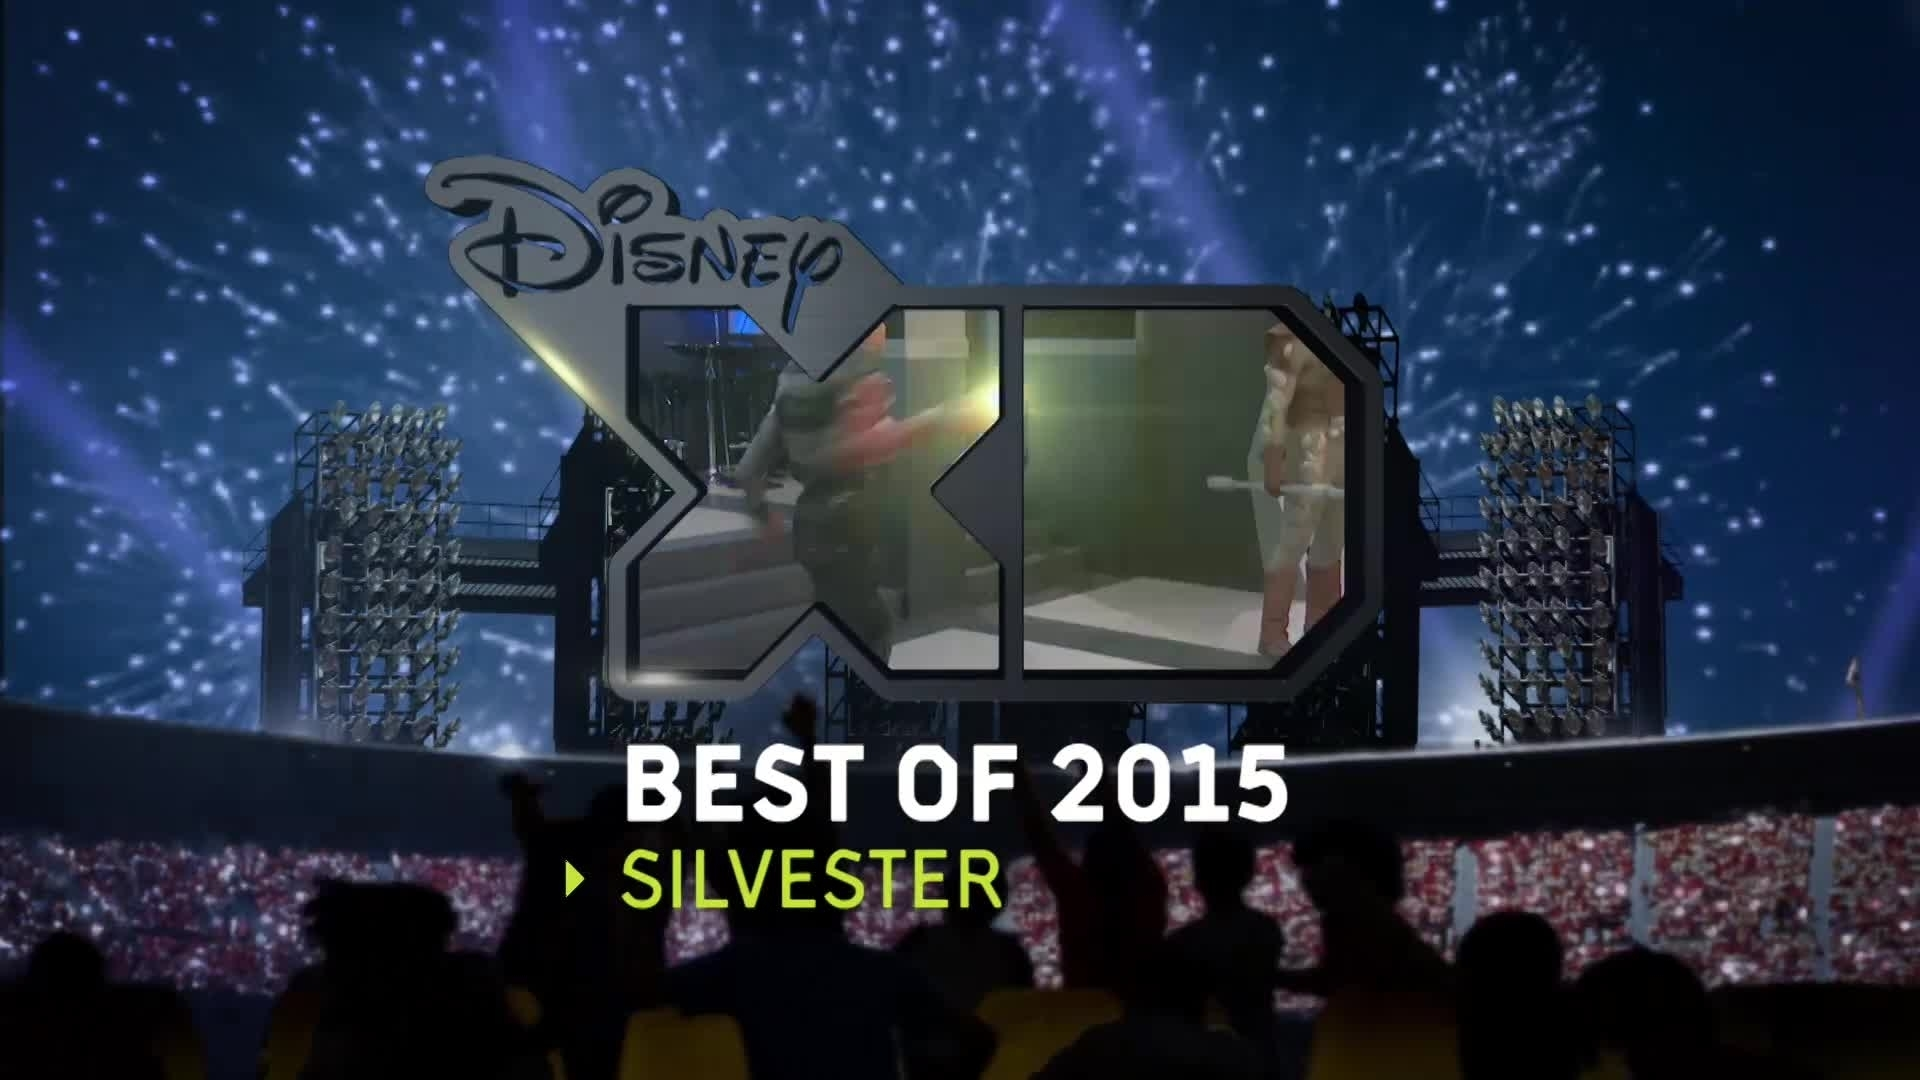 Disney XD - Best of 2015